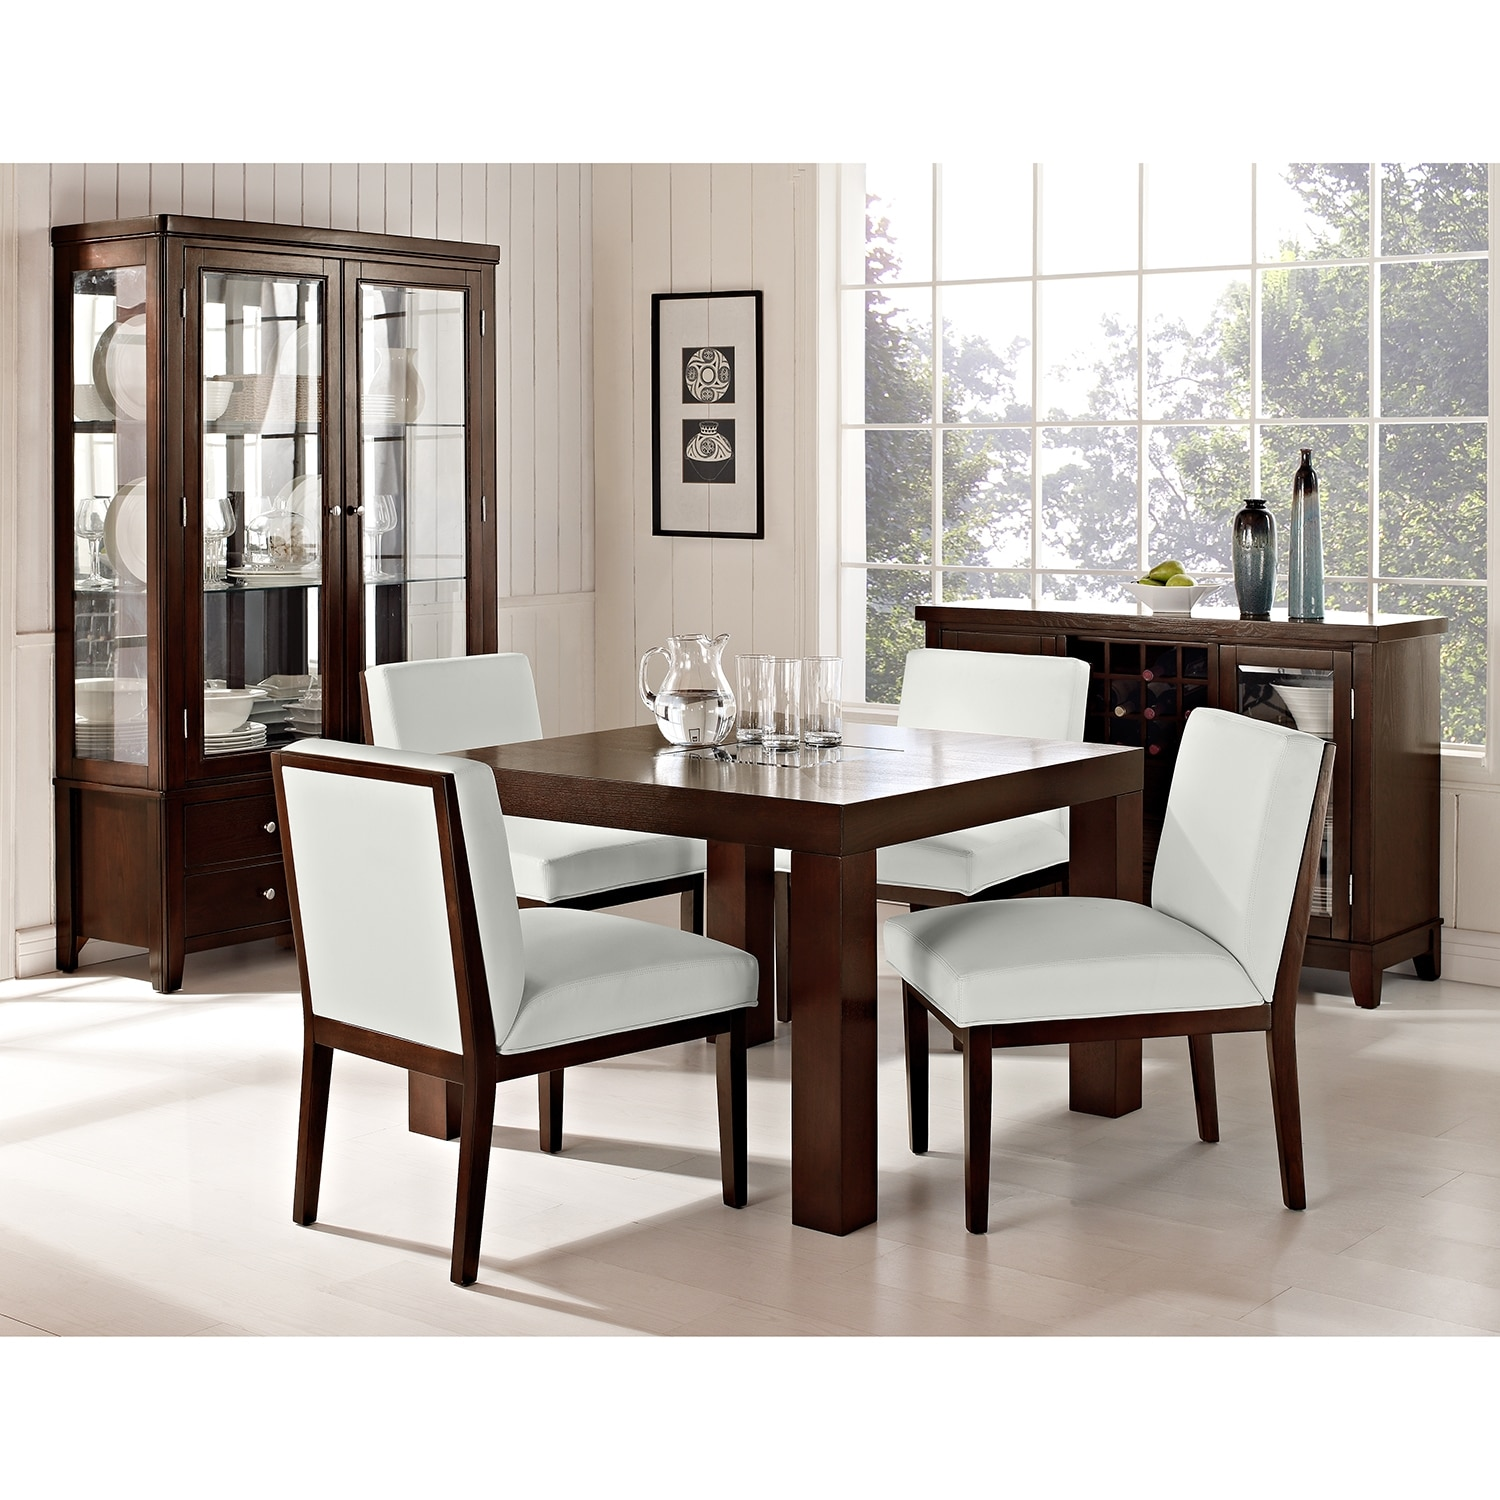 dining room furniture tango tempest ii 5 pc dinette 42 table